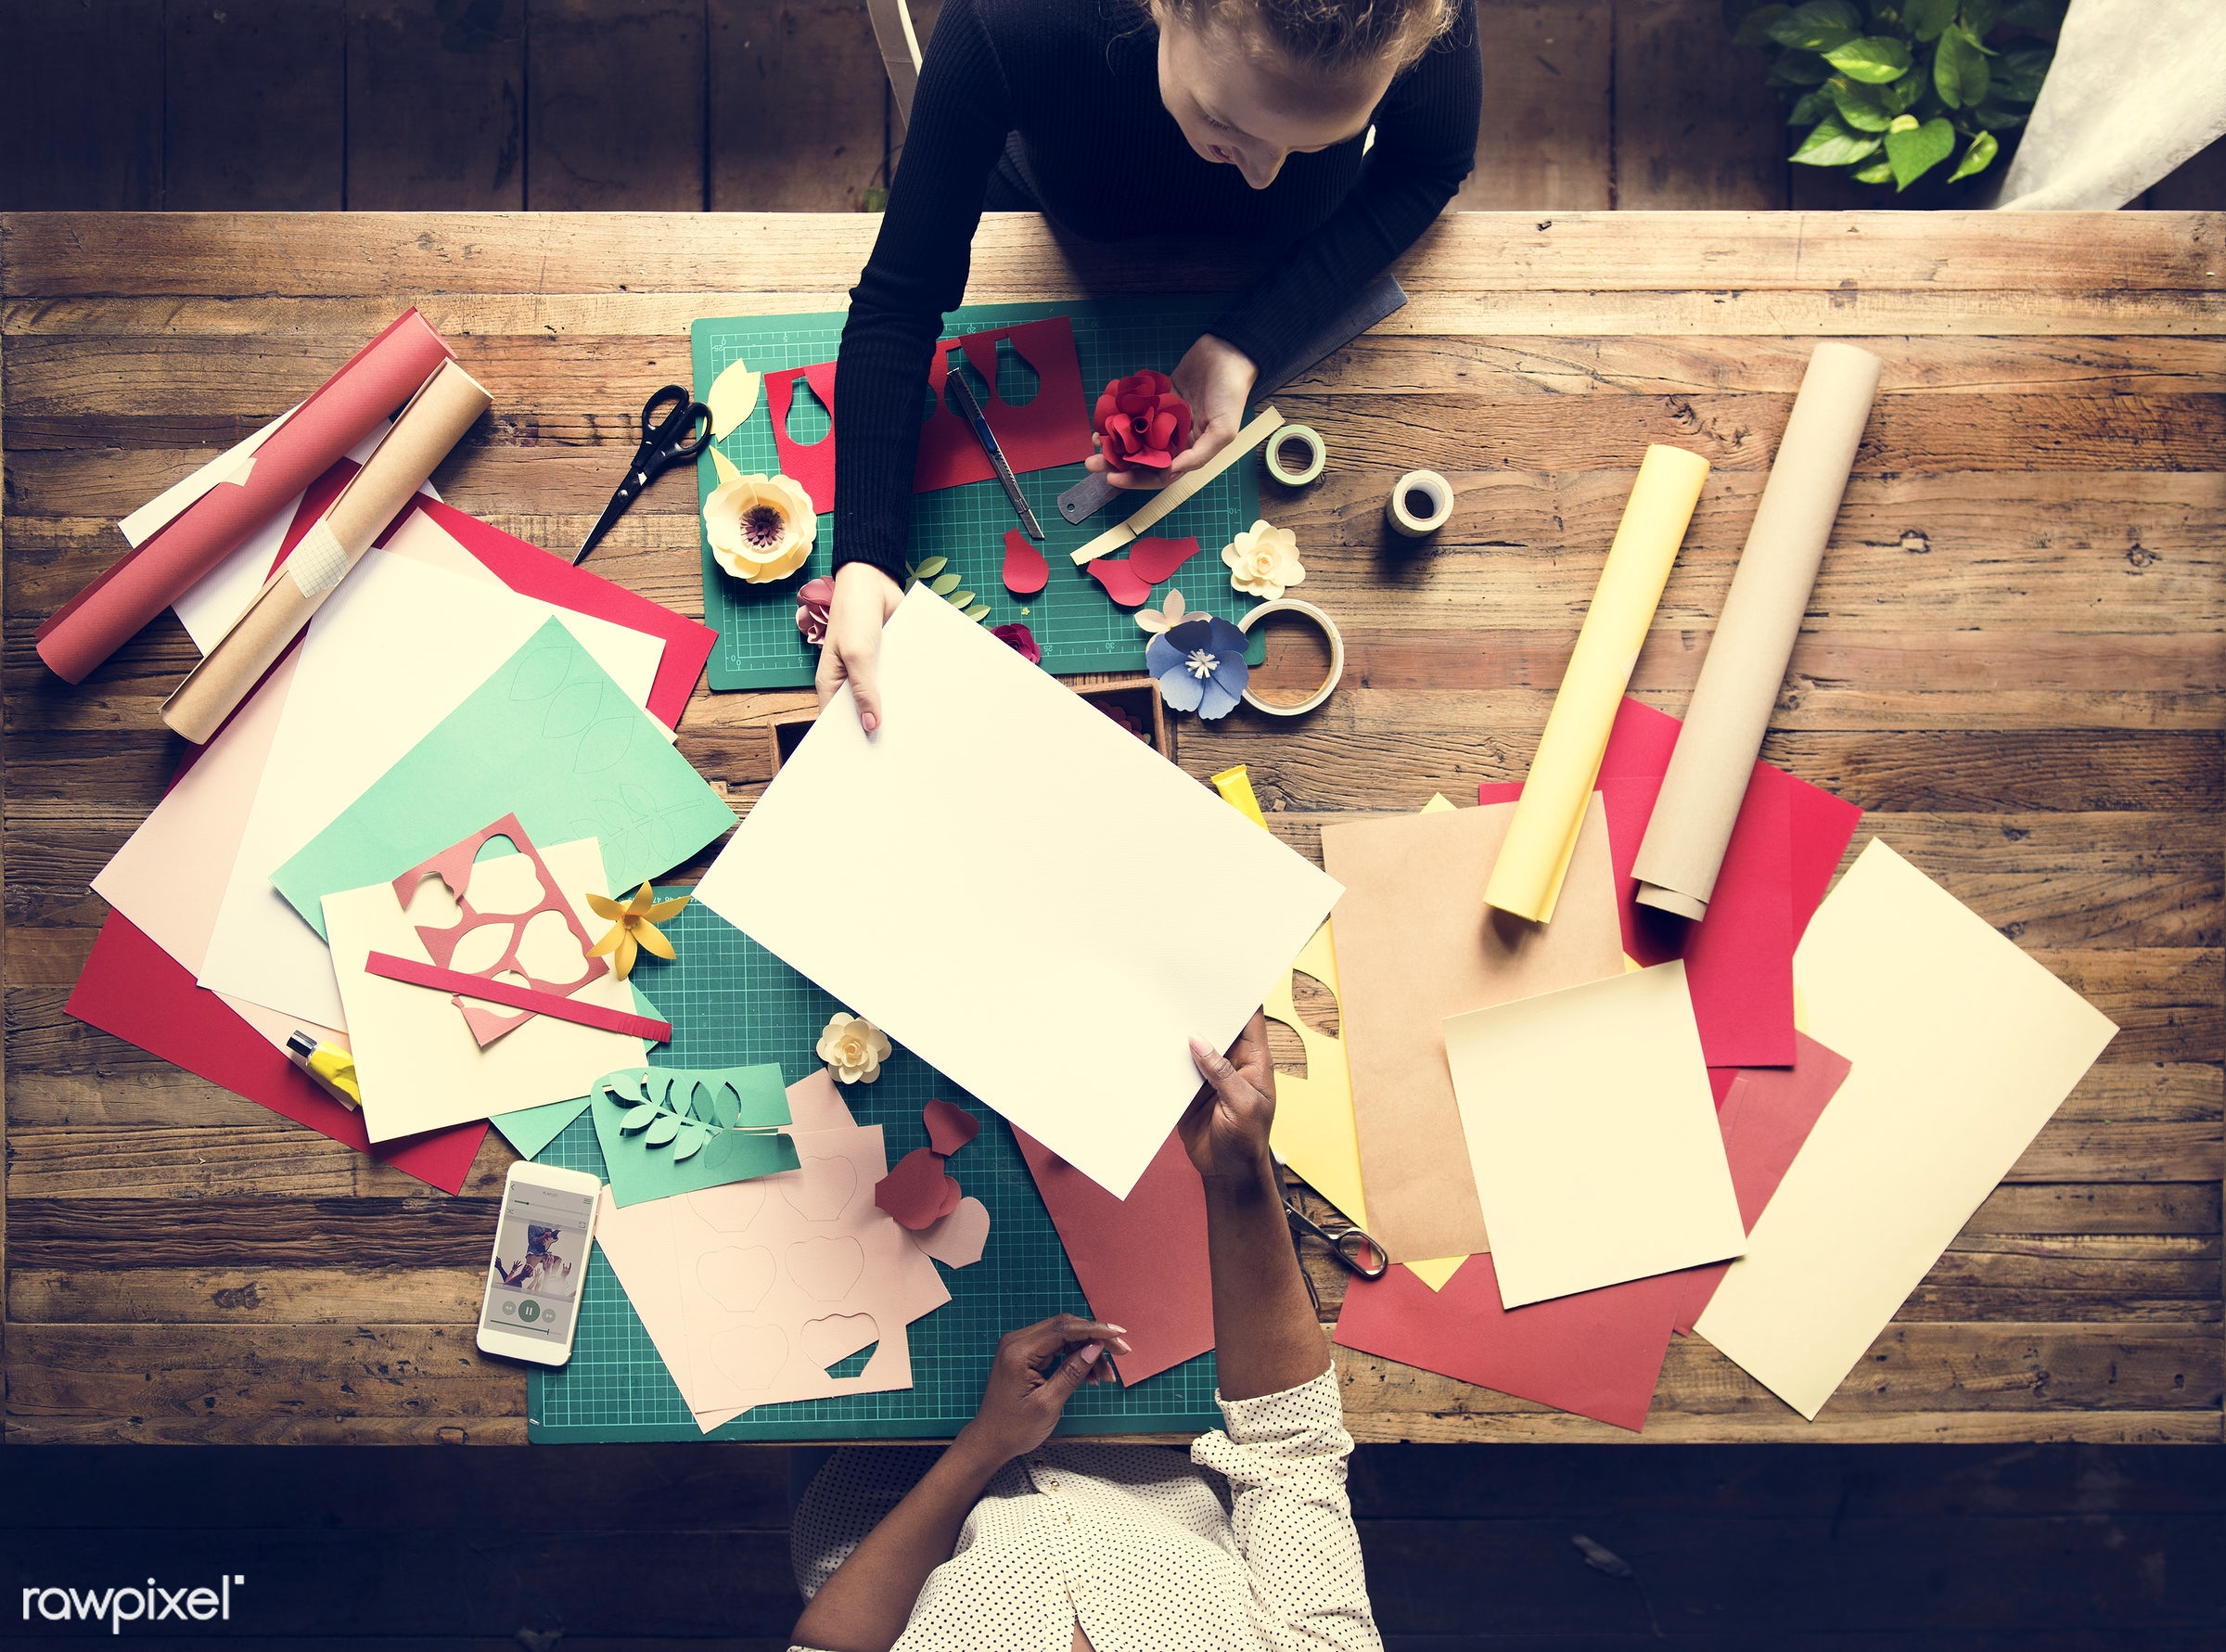 person, craft, colorful, handicraft, leaf, people, creativity, together, help, hands, making, do, working, aerial view,...